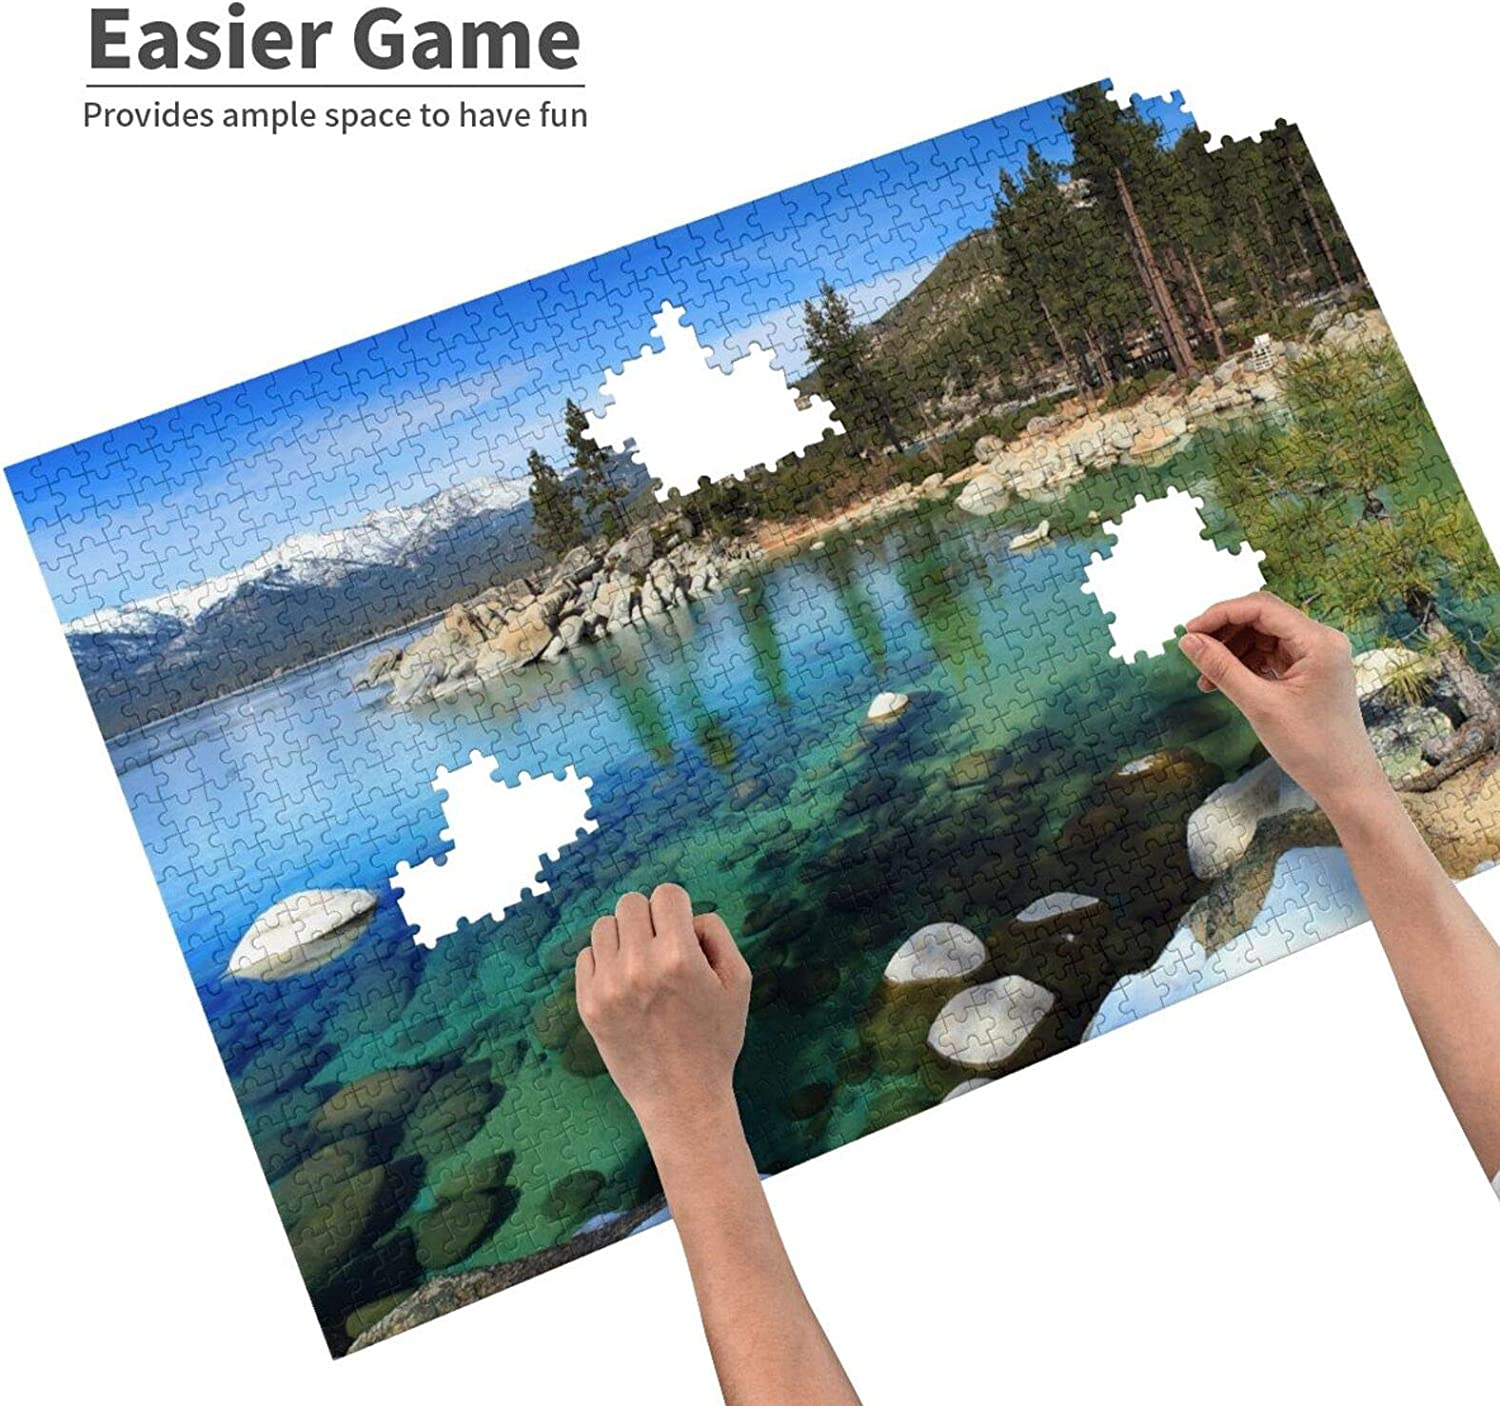 Lake Tahoe Tapestry California Jigsaw Puzzles Premium Adult 1000 Pieces Puzzle Educational Jigsaws Table Games Sturdy Fact Poster Personalized Recyclable Christmas Toy Game Gift For Kids Adult